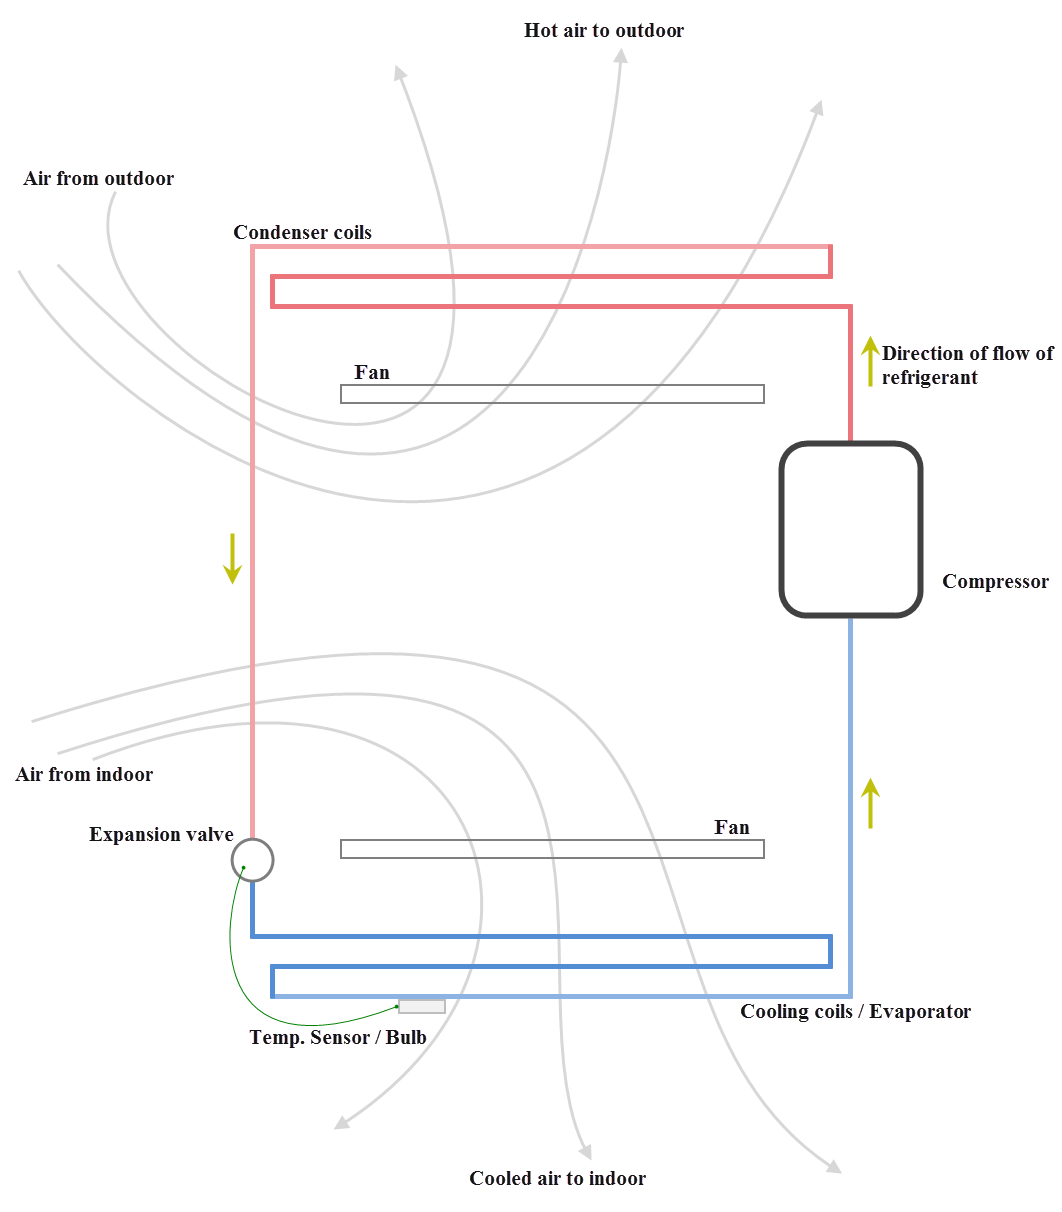 Mechanism and principle of air conditioning easy diagrammatic explanation benign blog